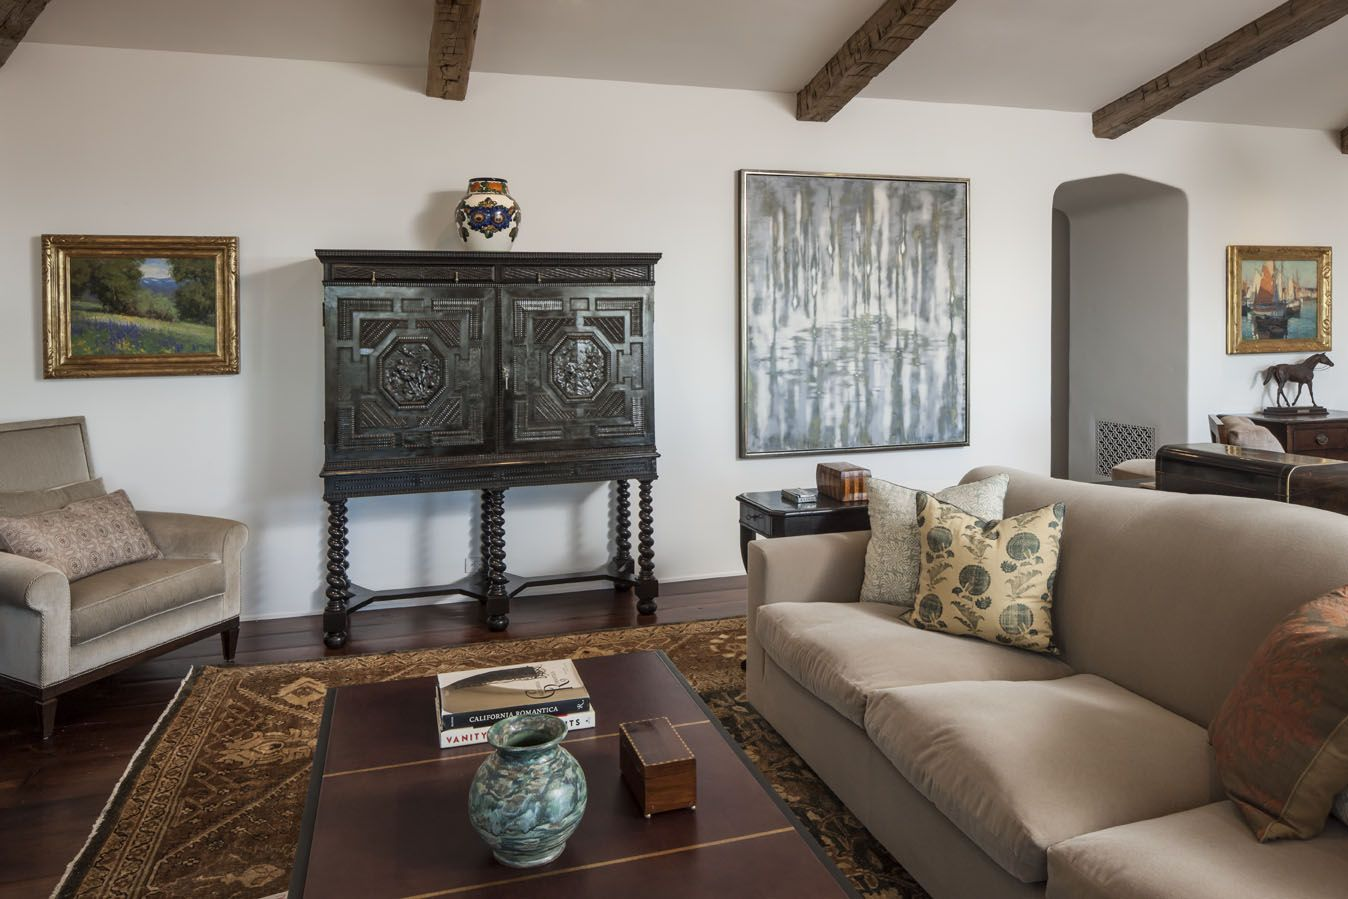 Manhattan Beach Great-room with a mix of fine art, creates an eclectic vibe.